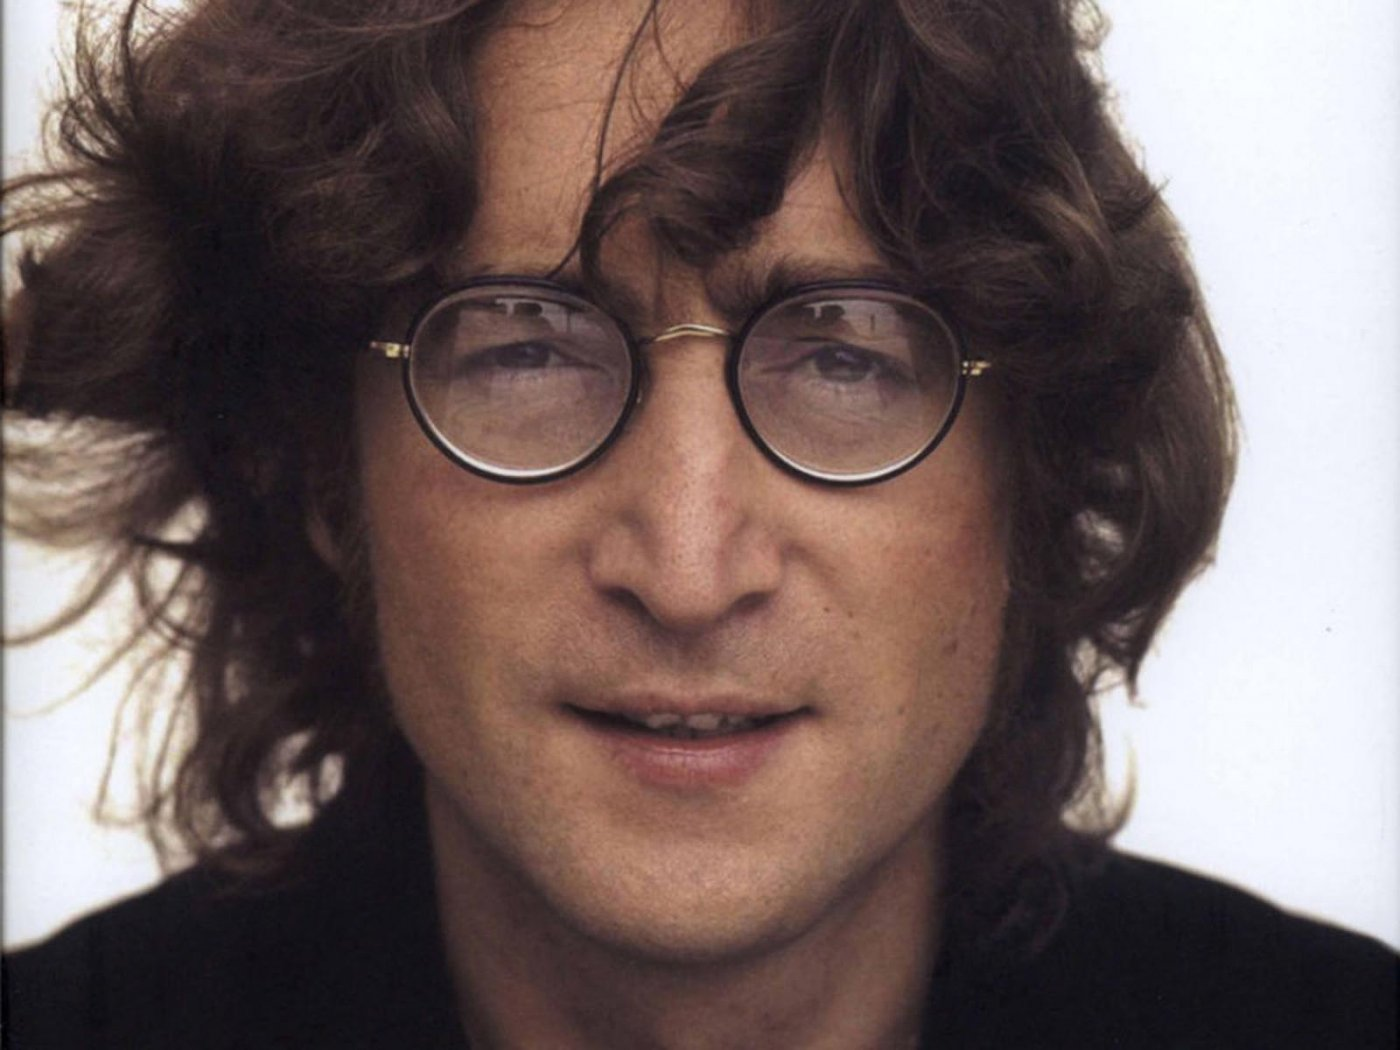 25 Impressive Facts & Quotes By John Lennon |Gathering of ...